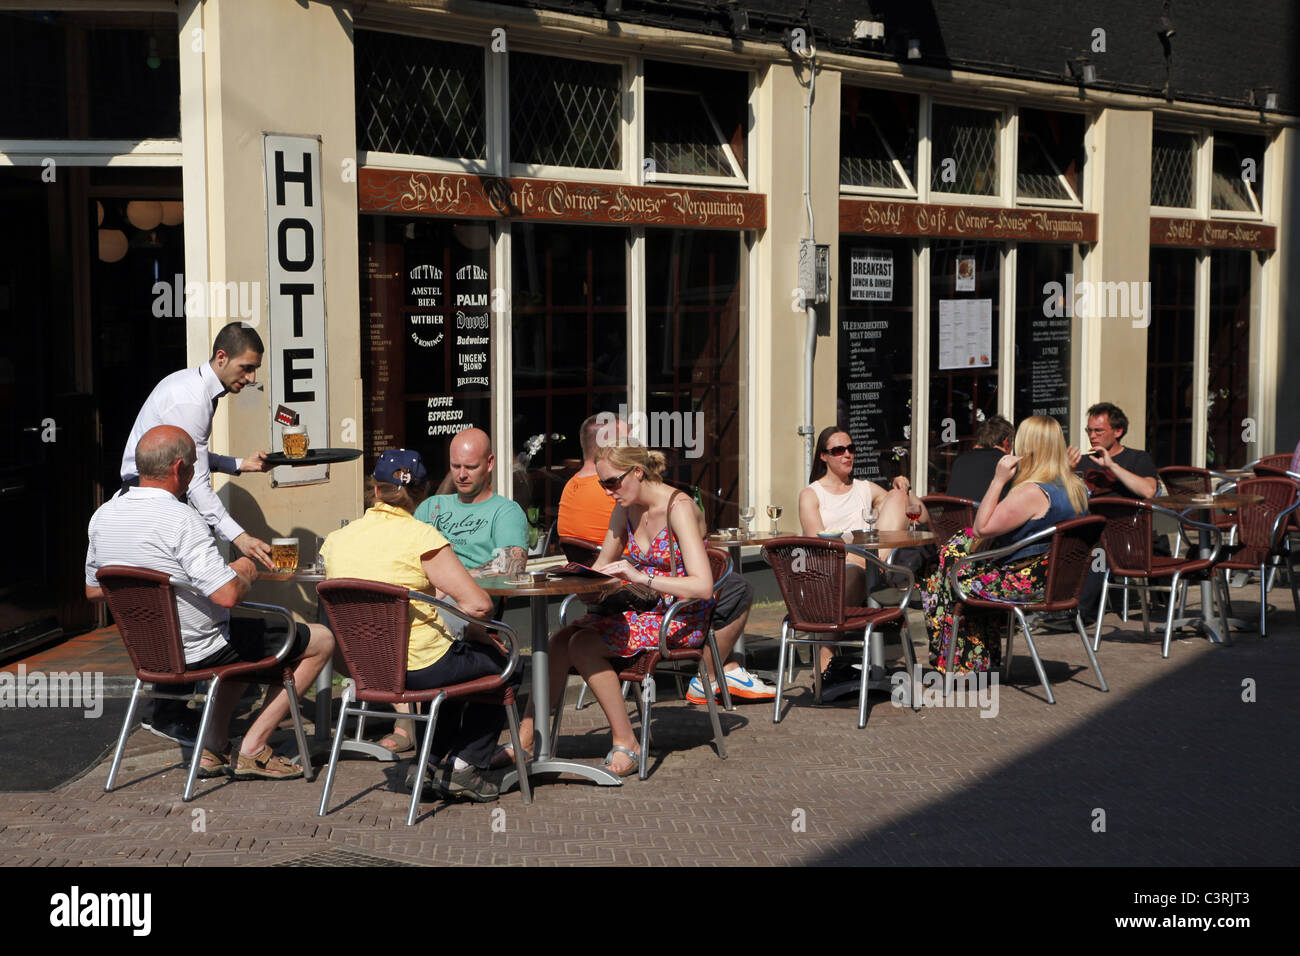 PEOPLE SAT AT CORNER HOUSE HOTEL CAFE AMSTERDAM HOLLAND 24 April 2011 - Stock Image